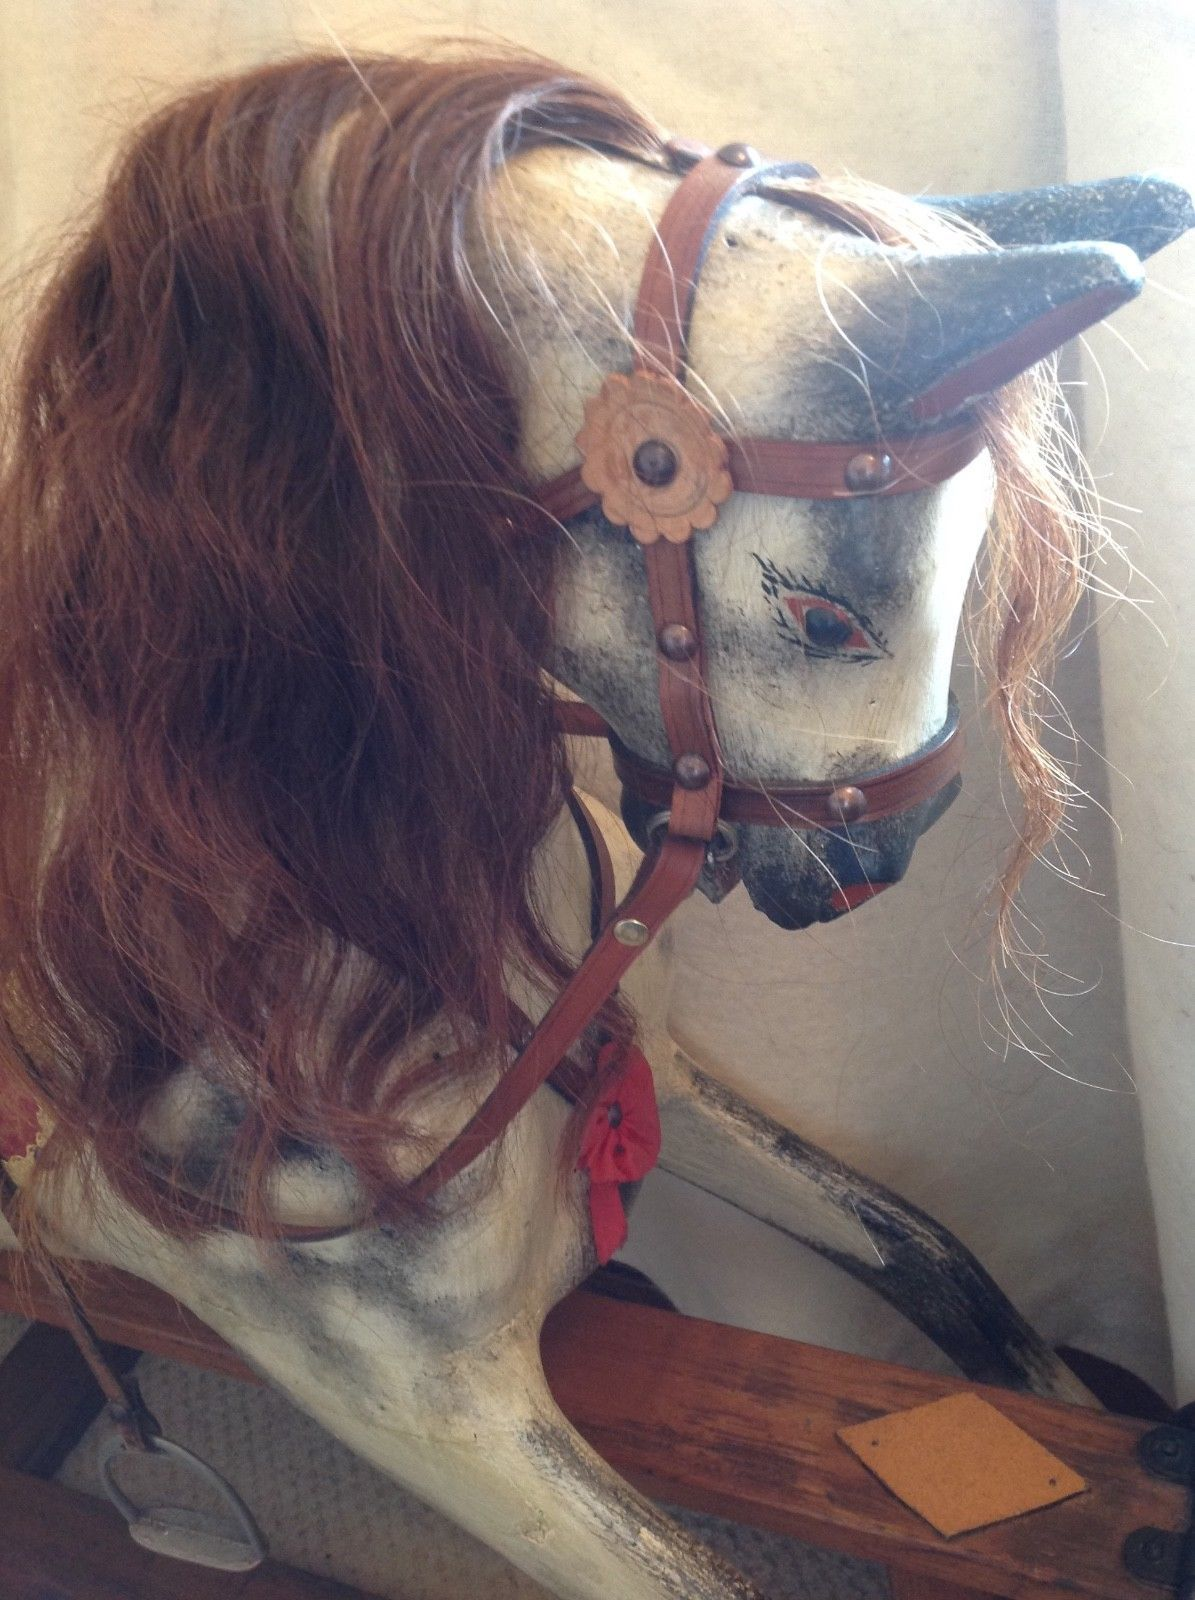 Collinsons rocking horse for sale restored